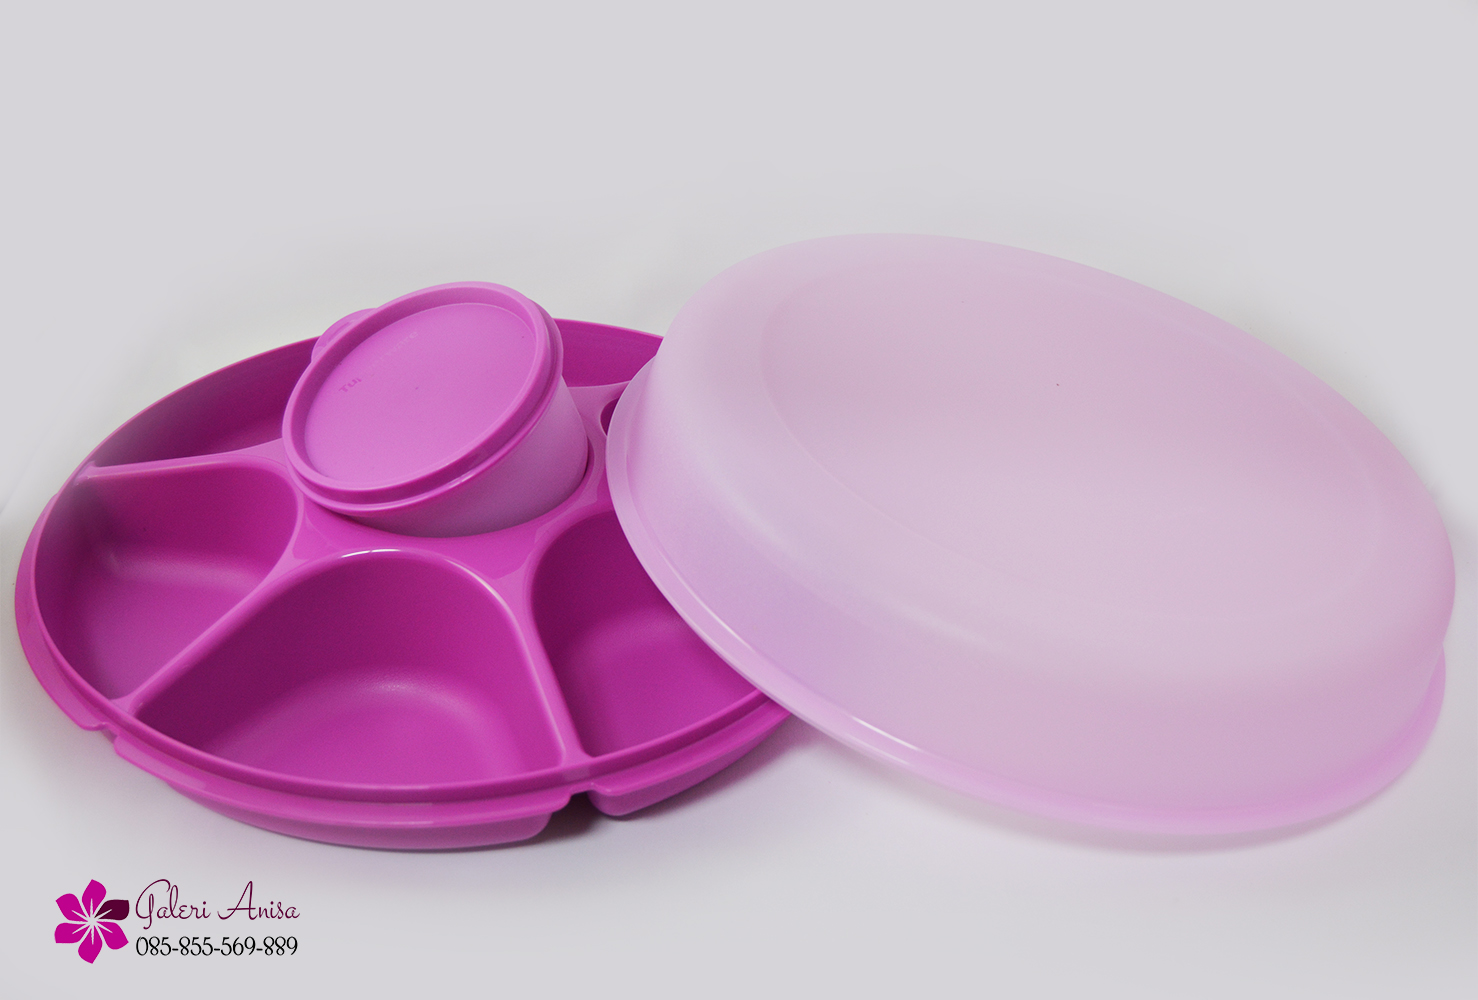 Seving Center Tupperware